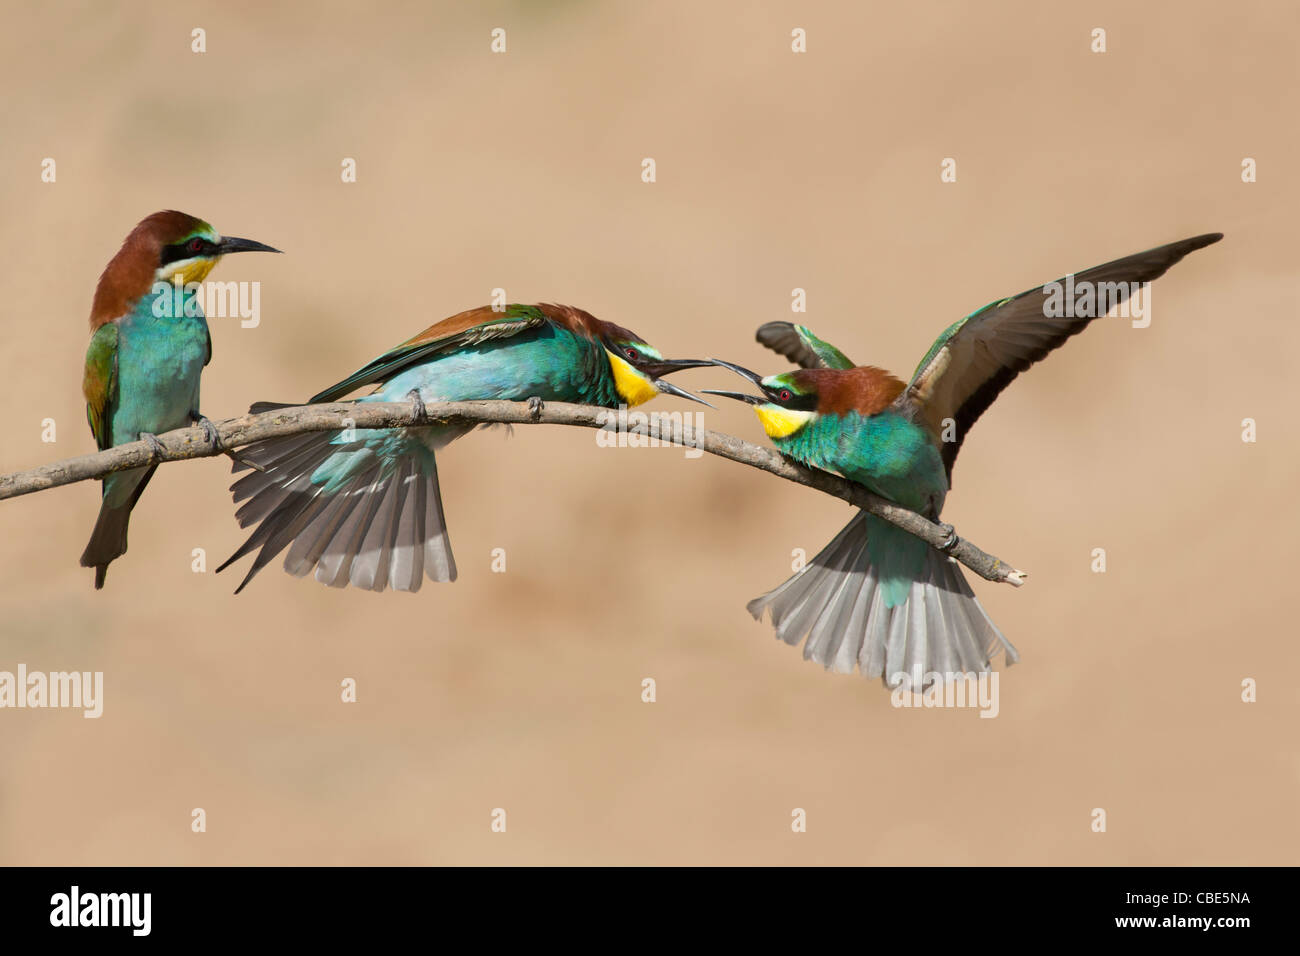 European Bee-eater (Merops apiaster), three perched on stick, squabbling, Spain - Stock Image